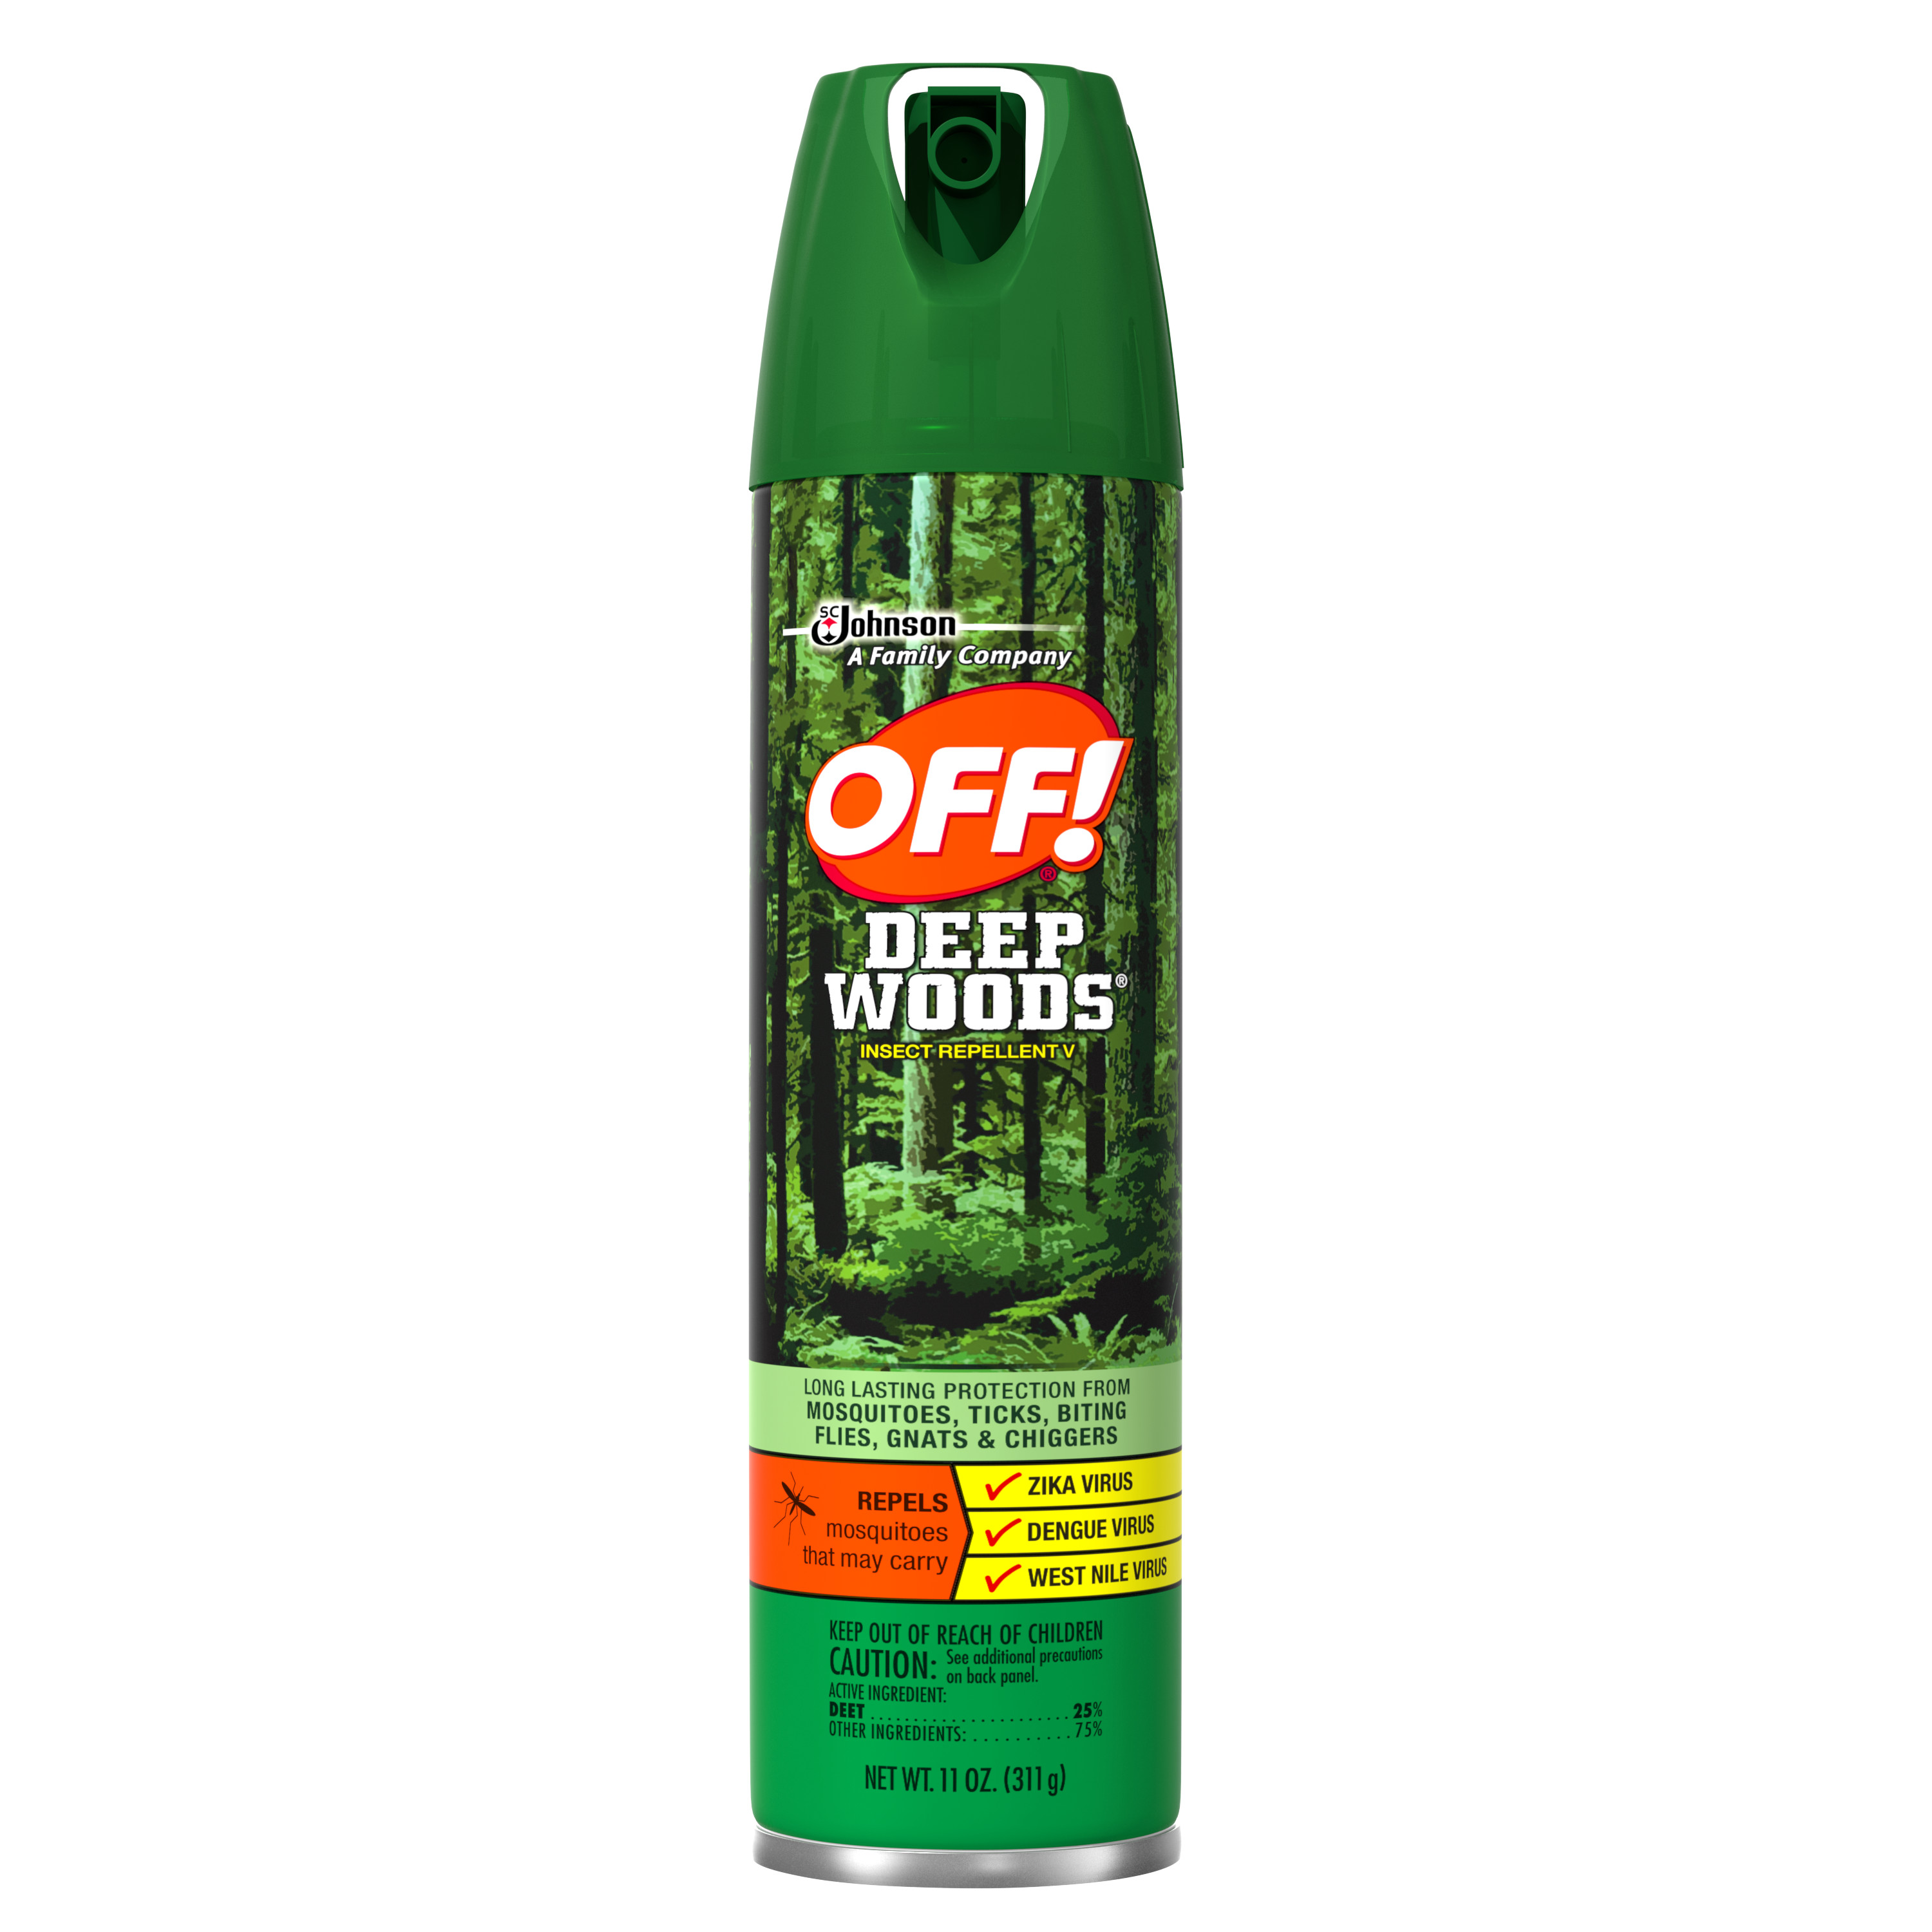 OFF! Deep Woods Insect Repellent V, 11 Ounces